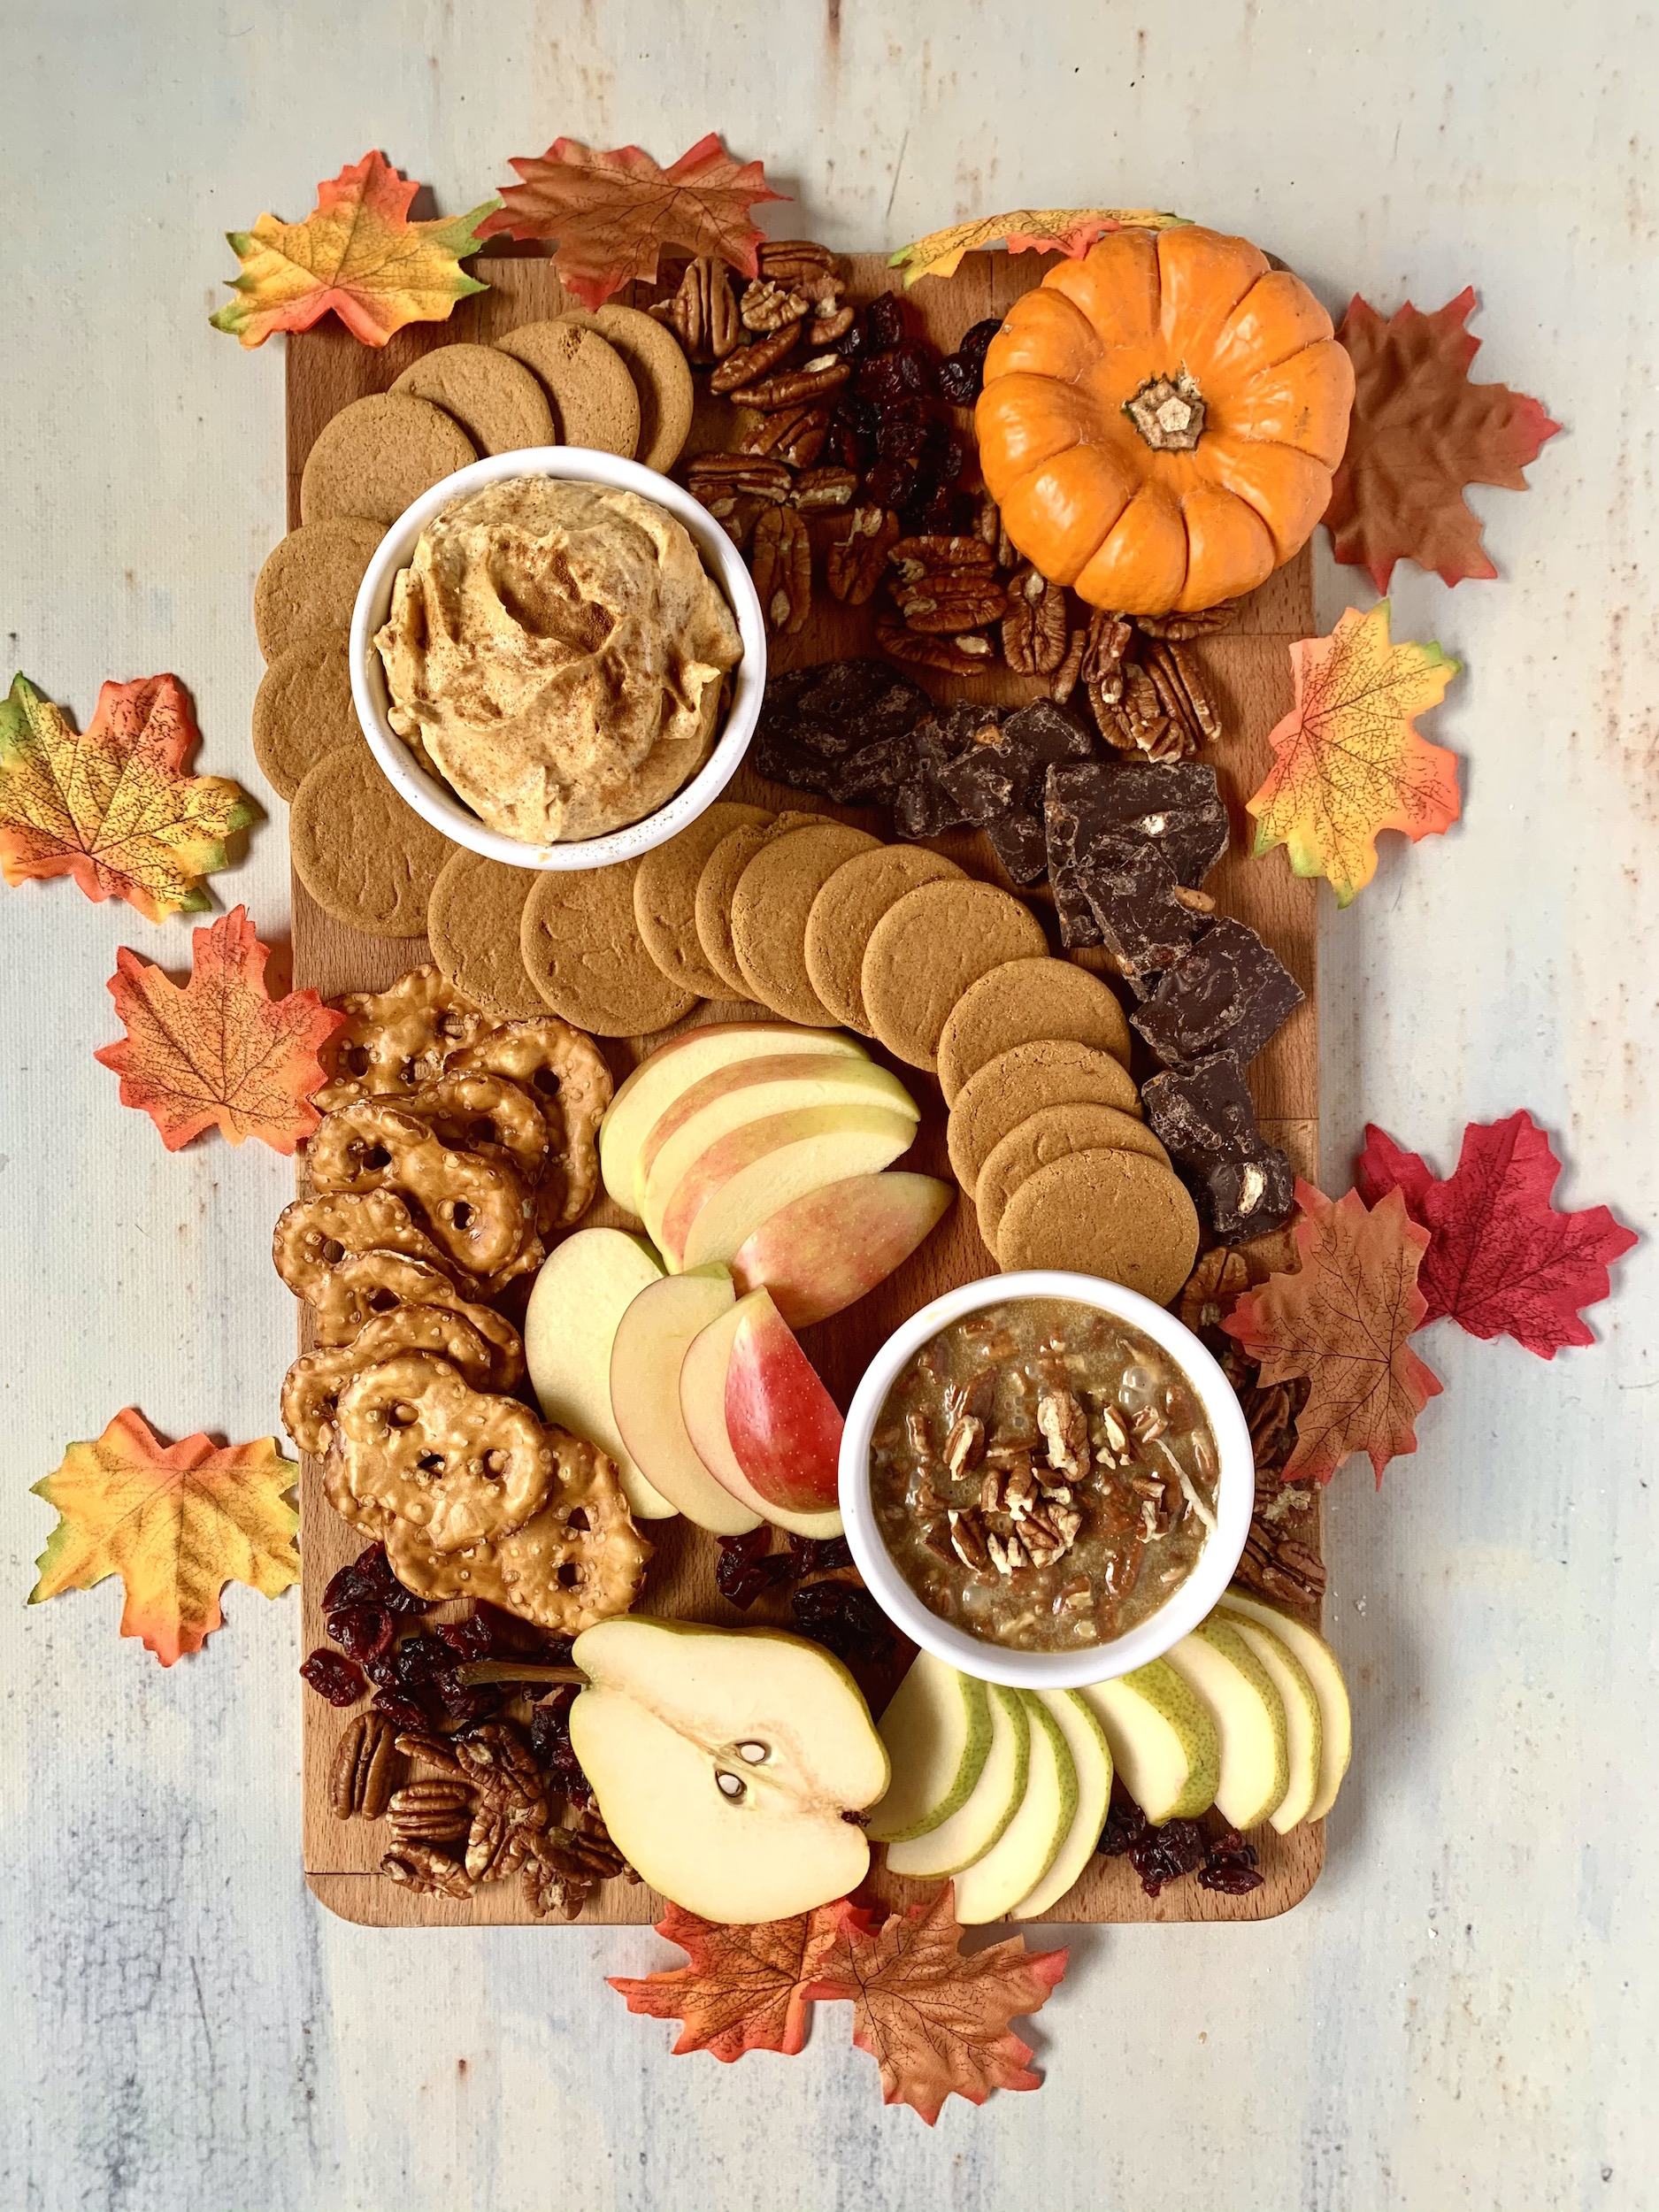 Board with Pumpkin pie dip, caramel pecan dip, fruit, cookies and nuts with a pumpkin and leaves decoration.